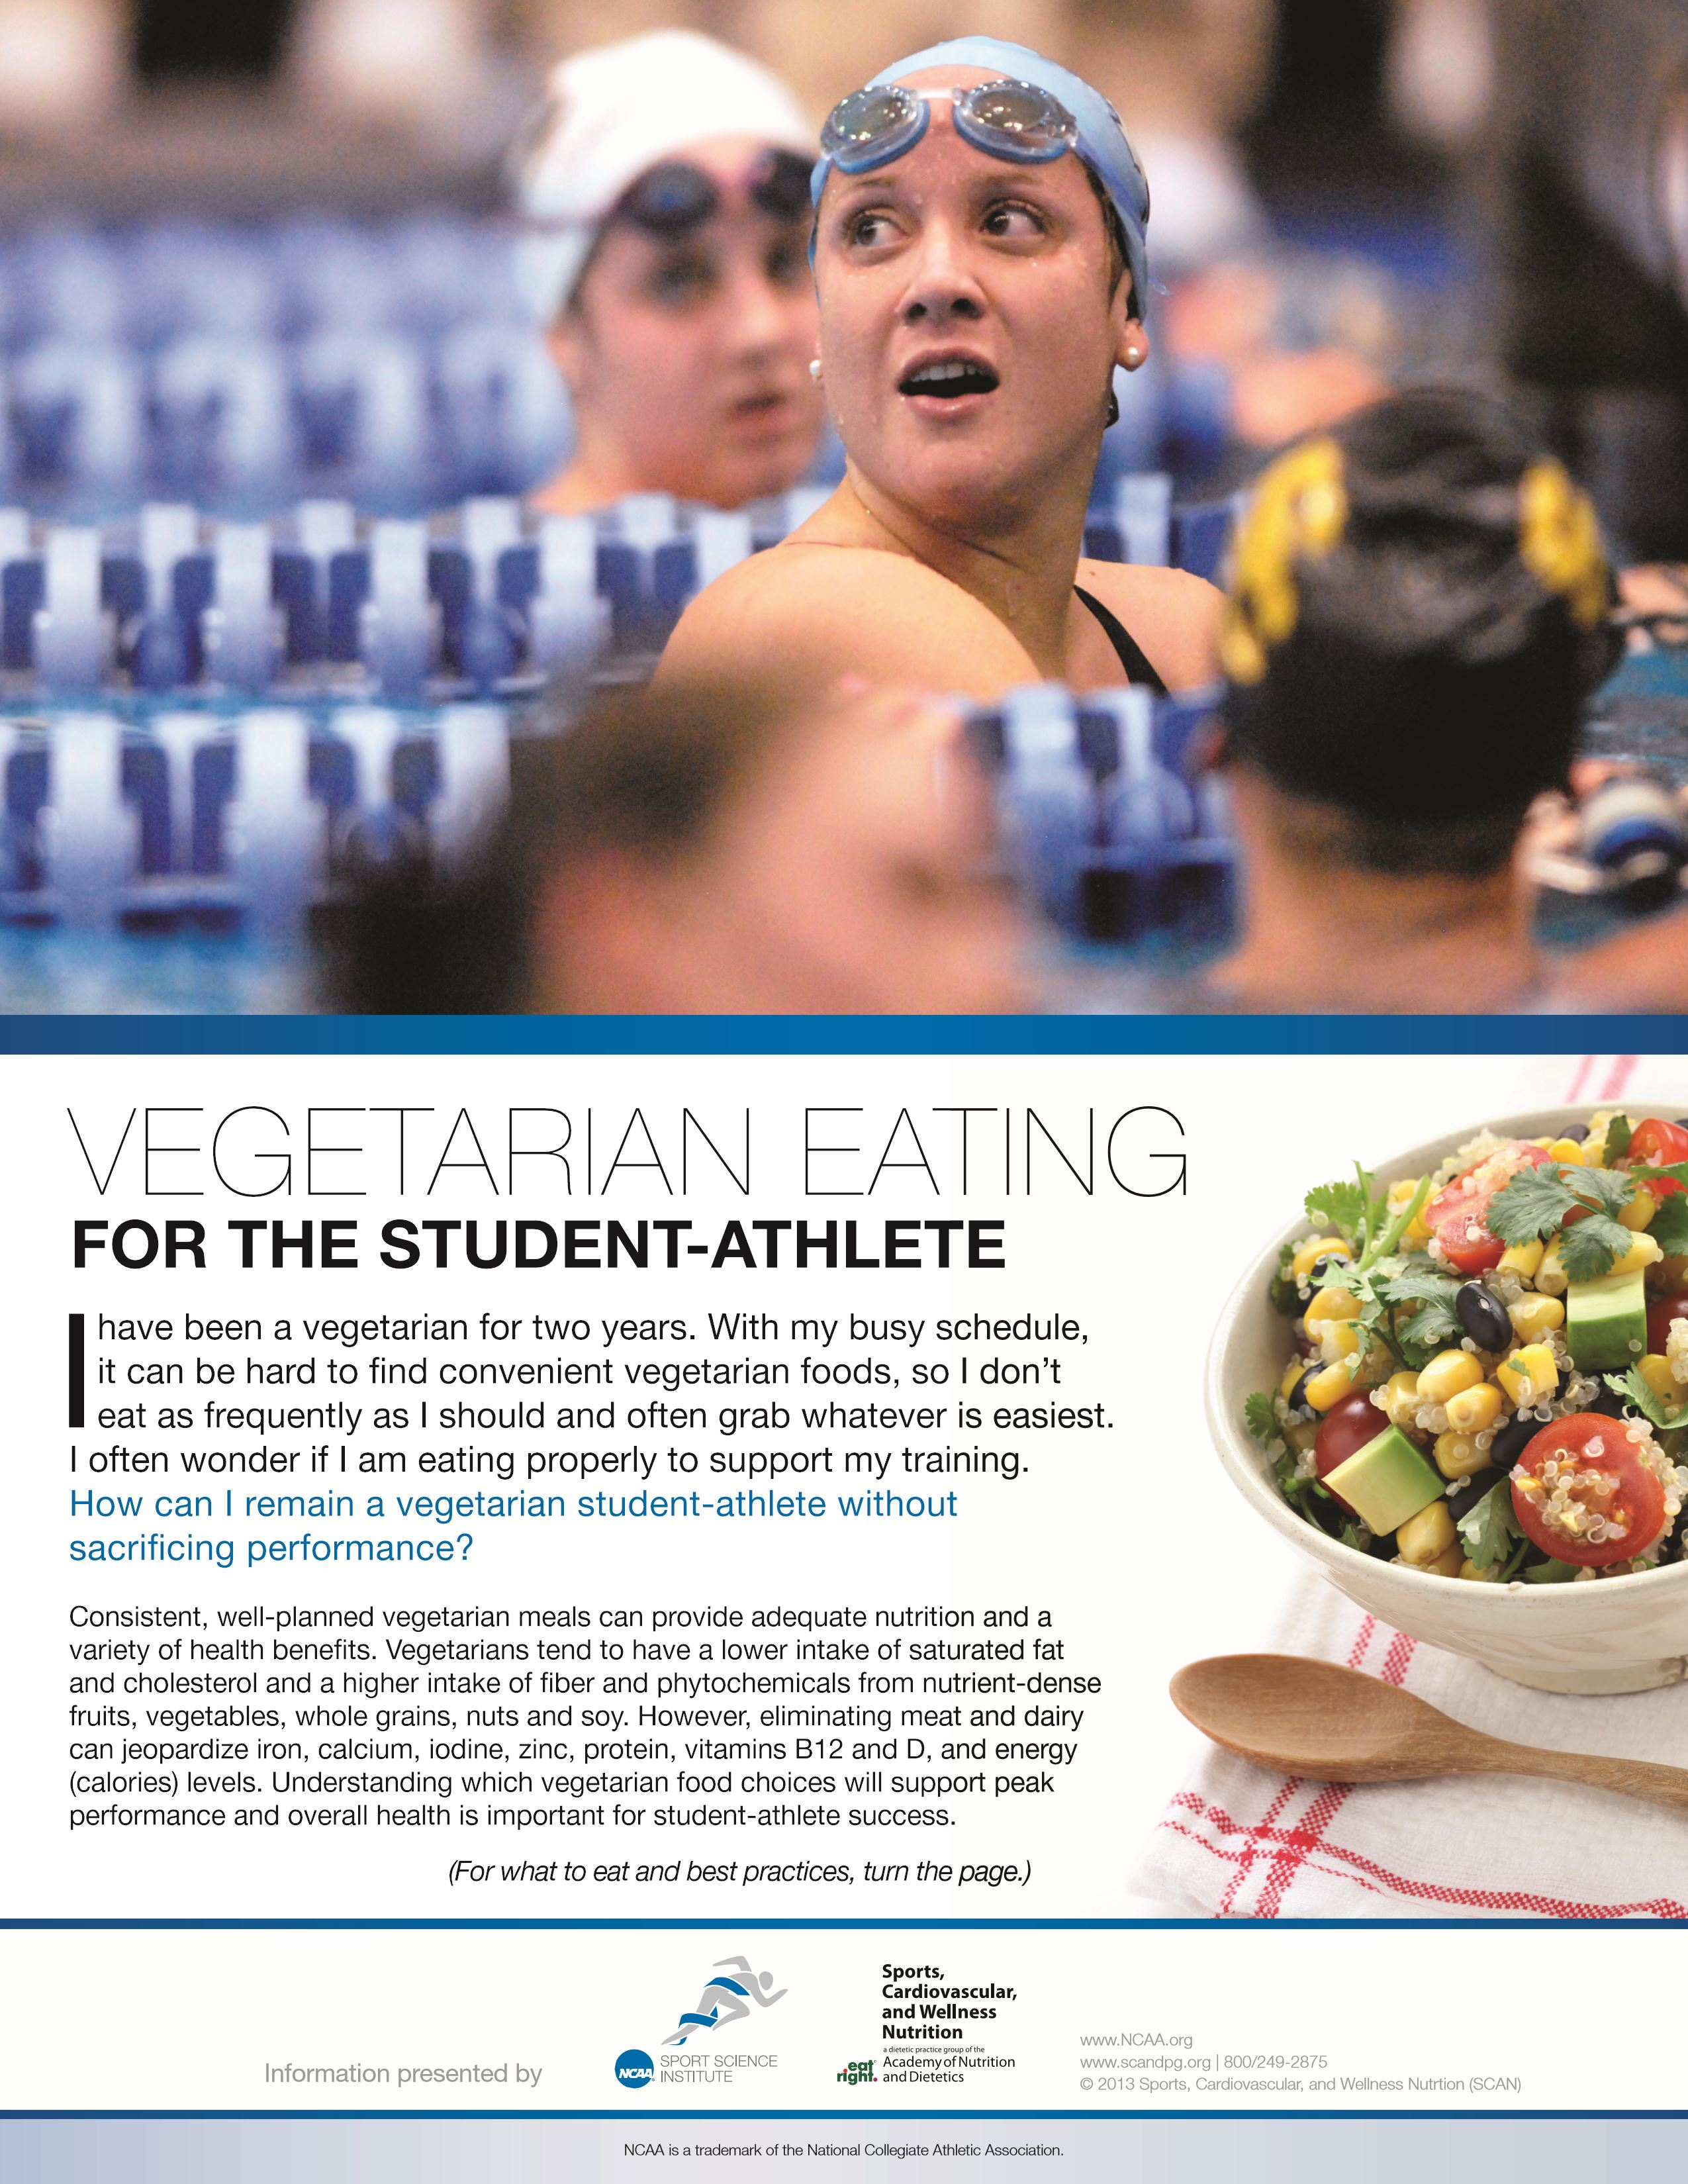 Vegetarian eating_NCAA fact sheet